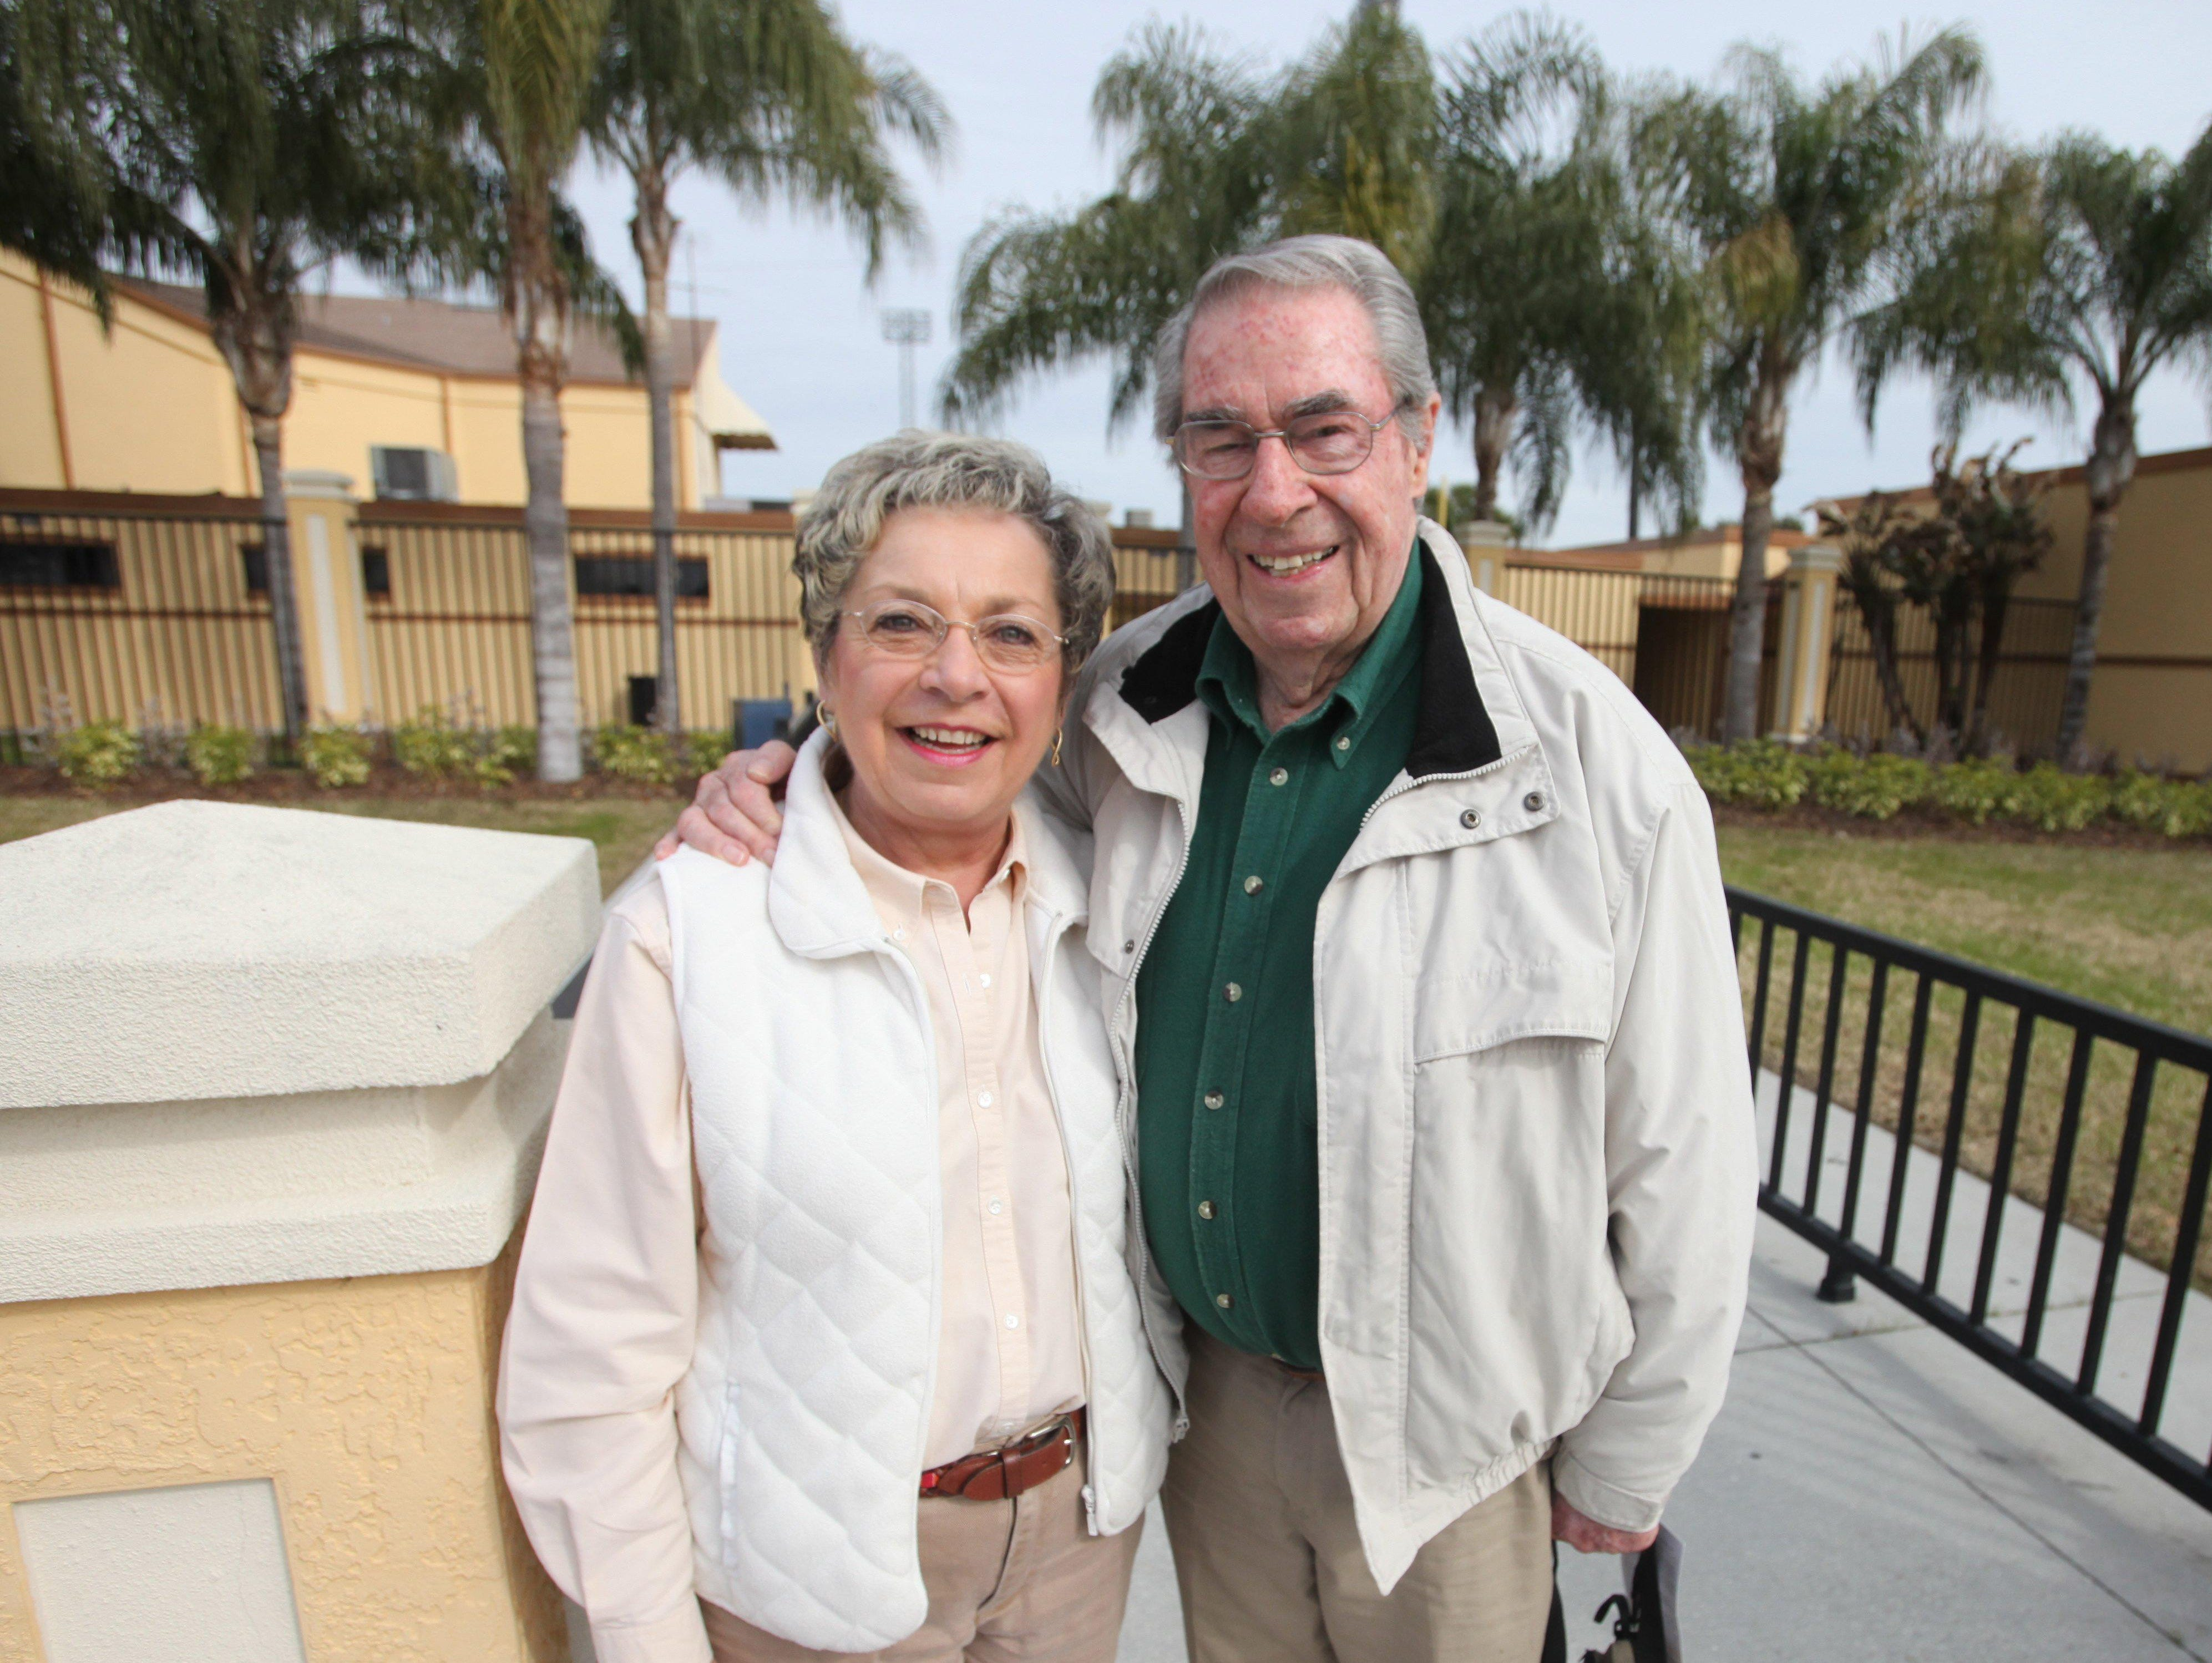 Paul Carey with his wife at Tigers spring training in 2014. The longtime radio announcer of the Detroit Tigers died Tuesday at age 88.